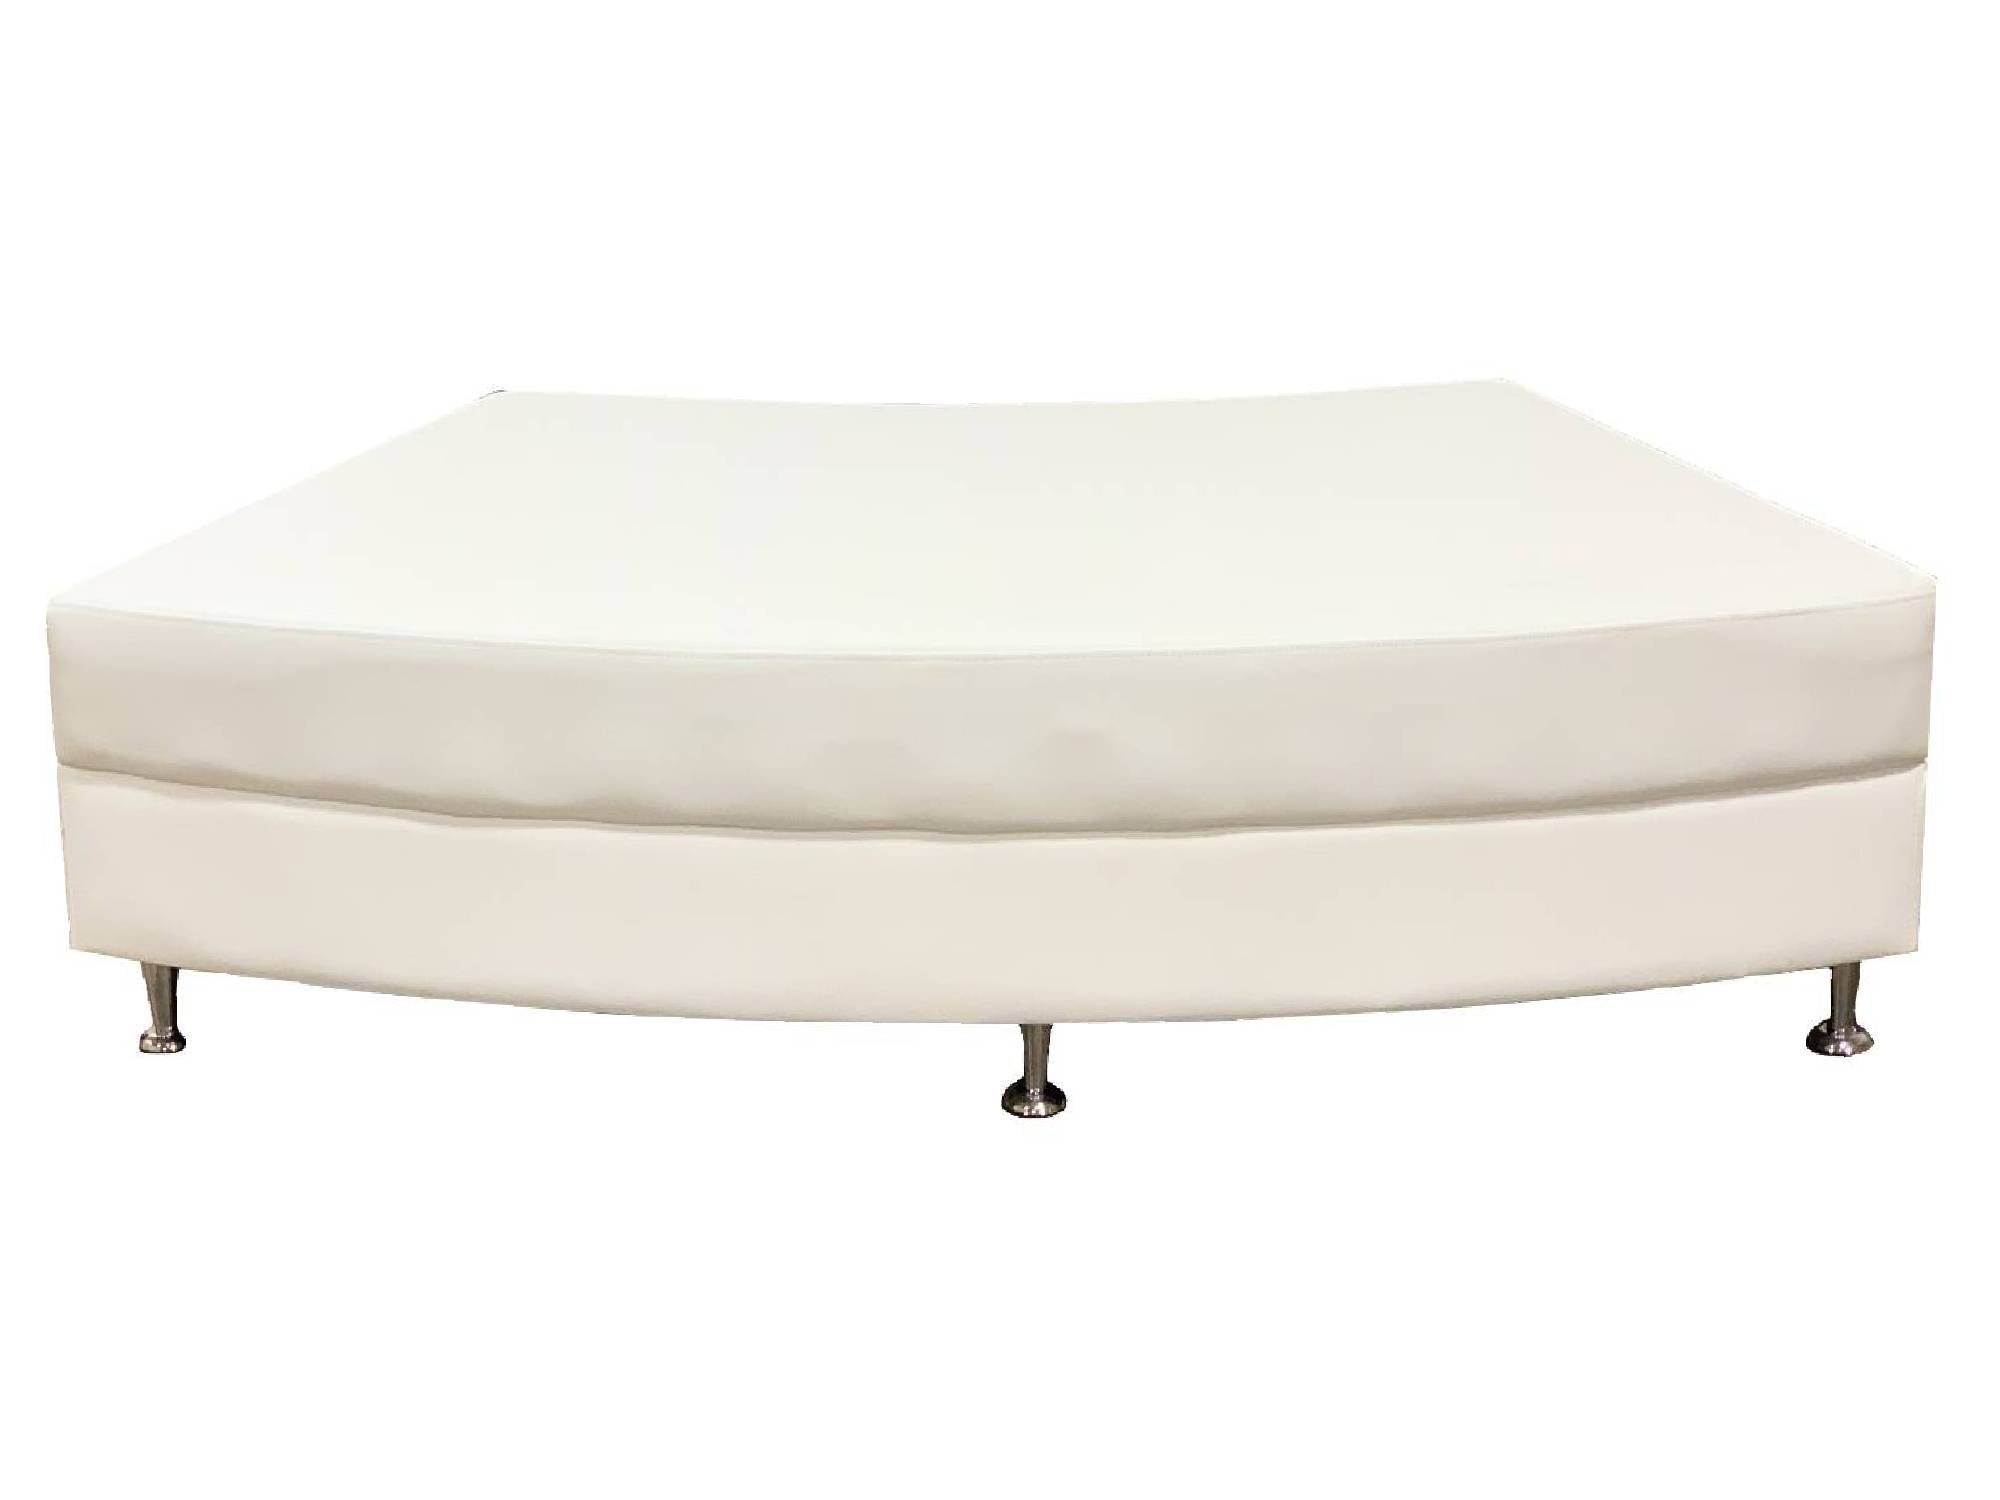 LUXURY QTR CIRCLE OTTOMAN - WHITE